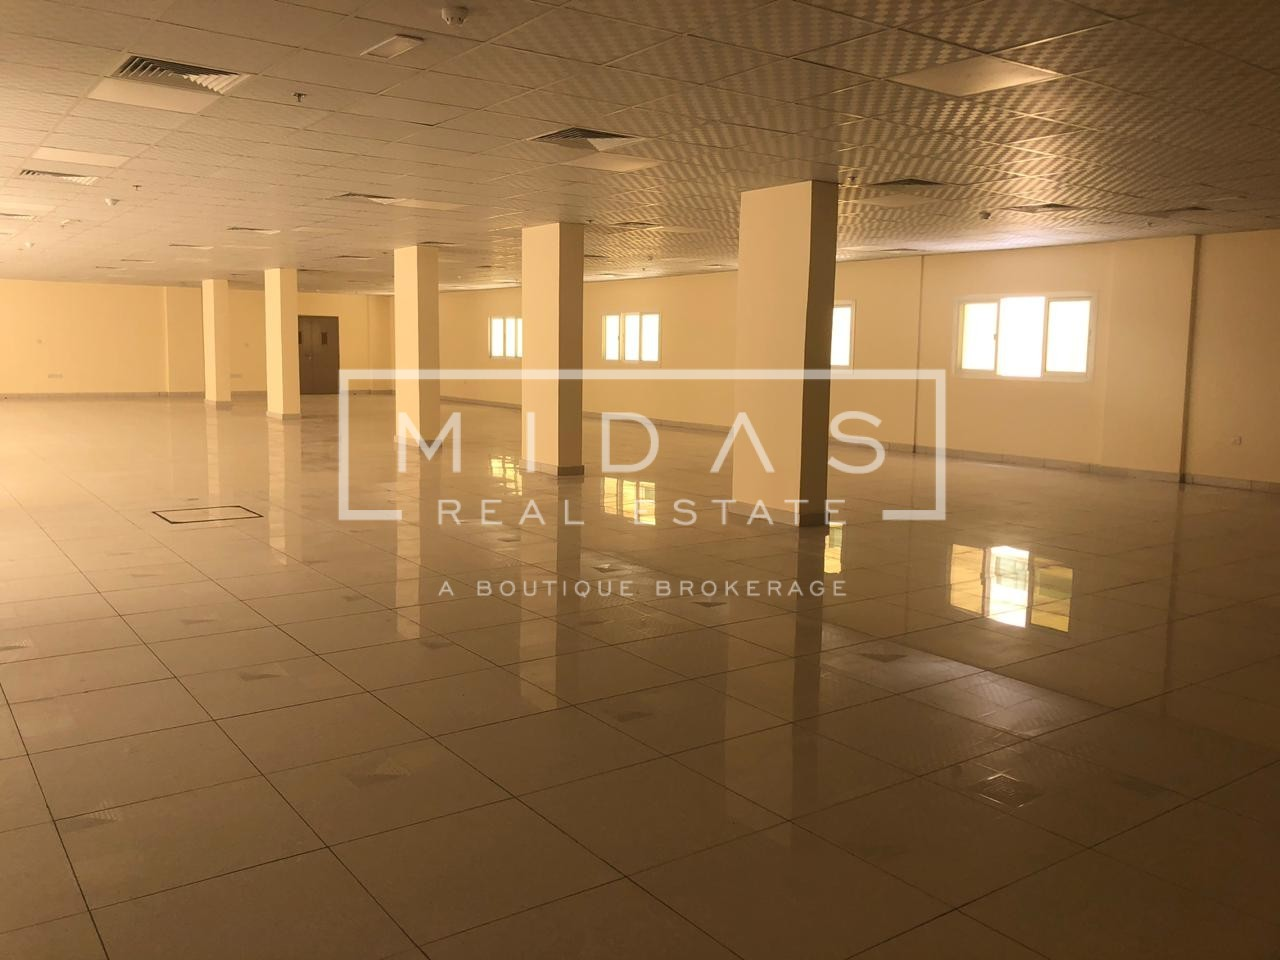 AED 2300 Per Room Net | 265 Rooms Available | Negotiable